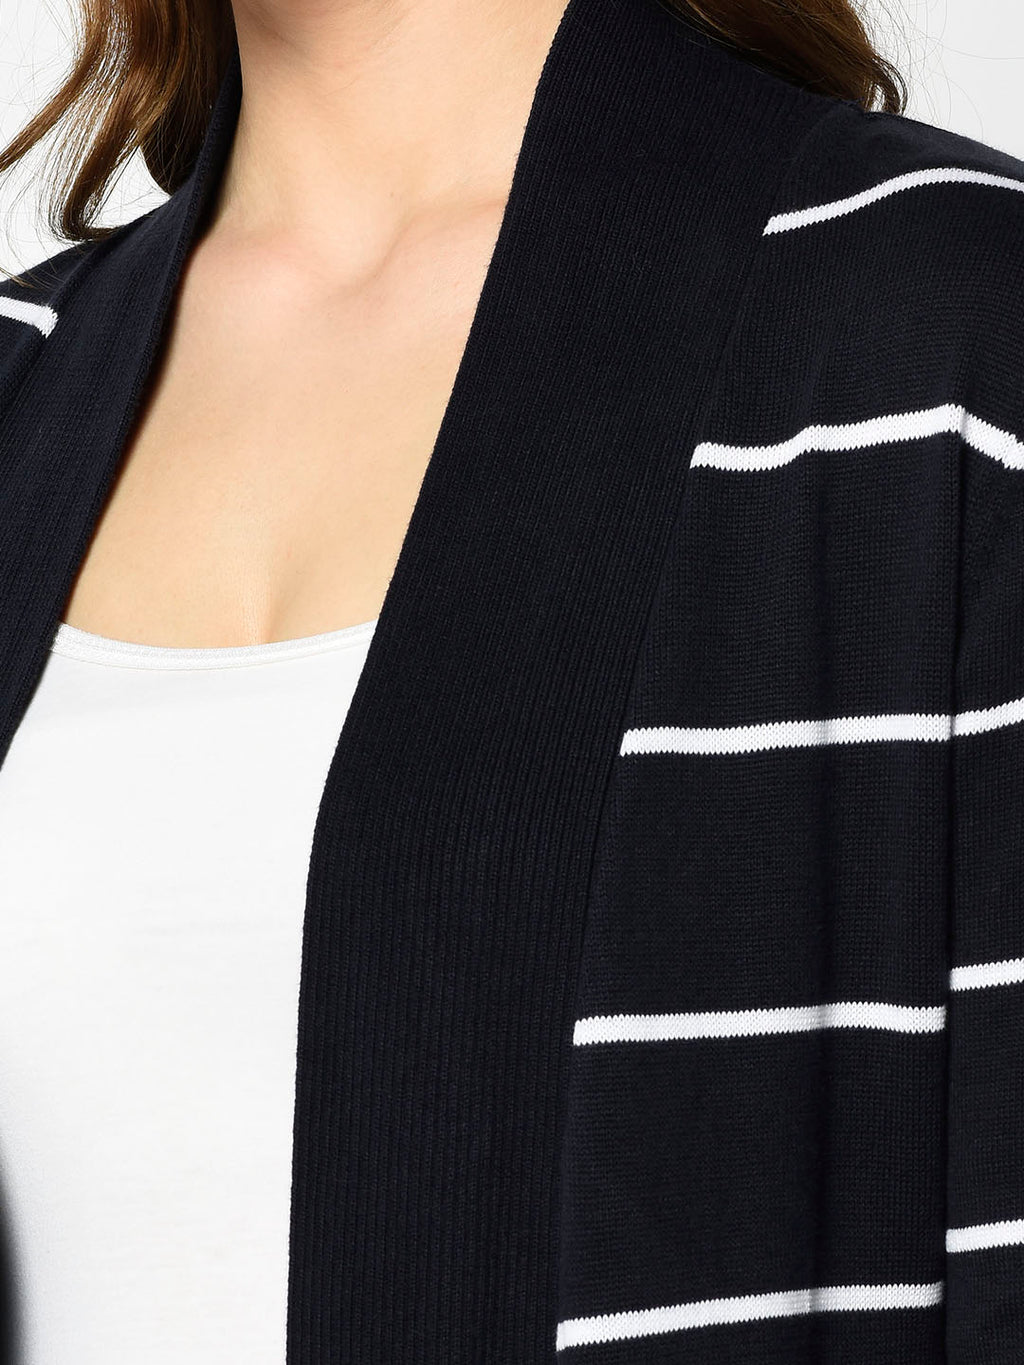 Navy and White Striped Waterfall Cardigan